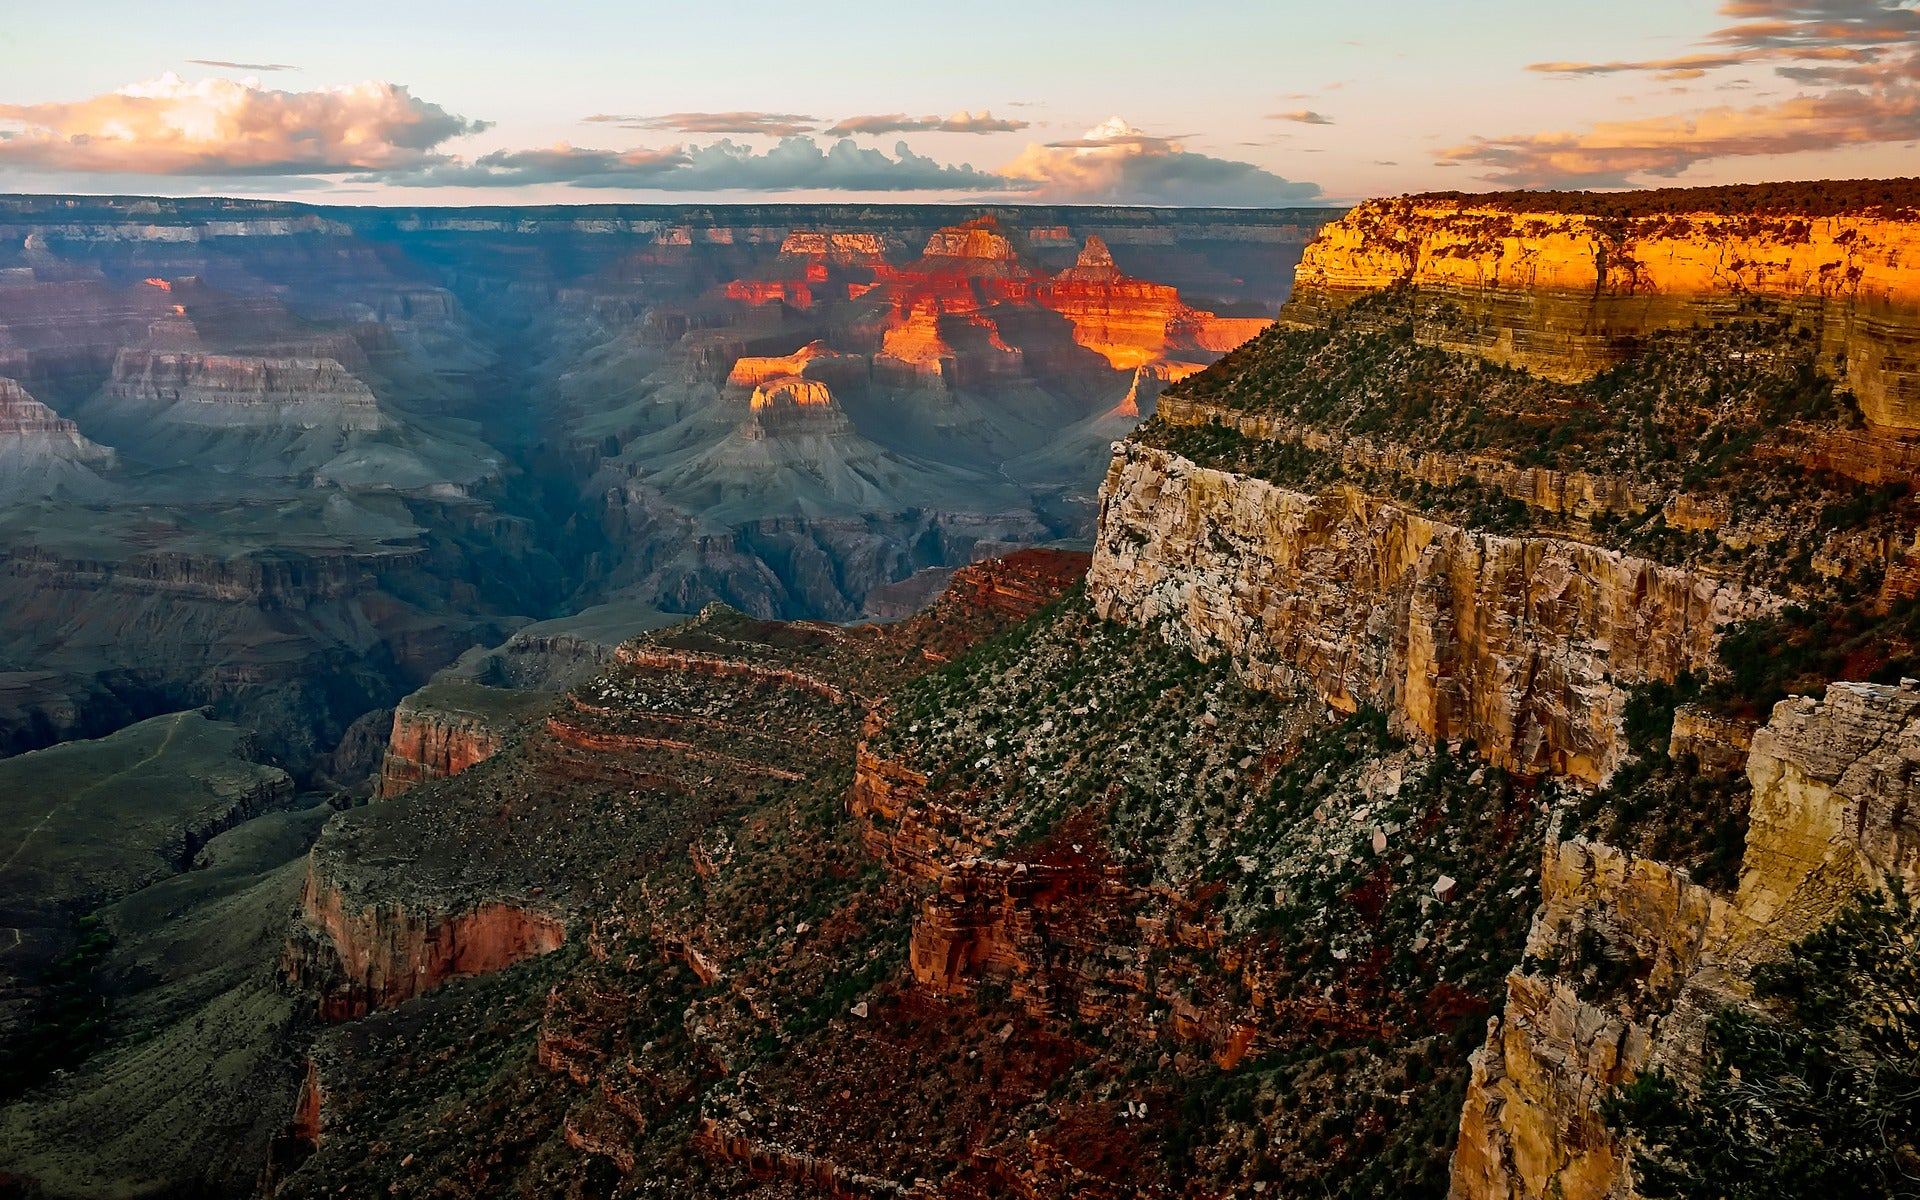 New to Backpacking? Ease into Adventure with Two Fully-Supported Arizona Trips